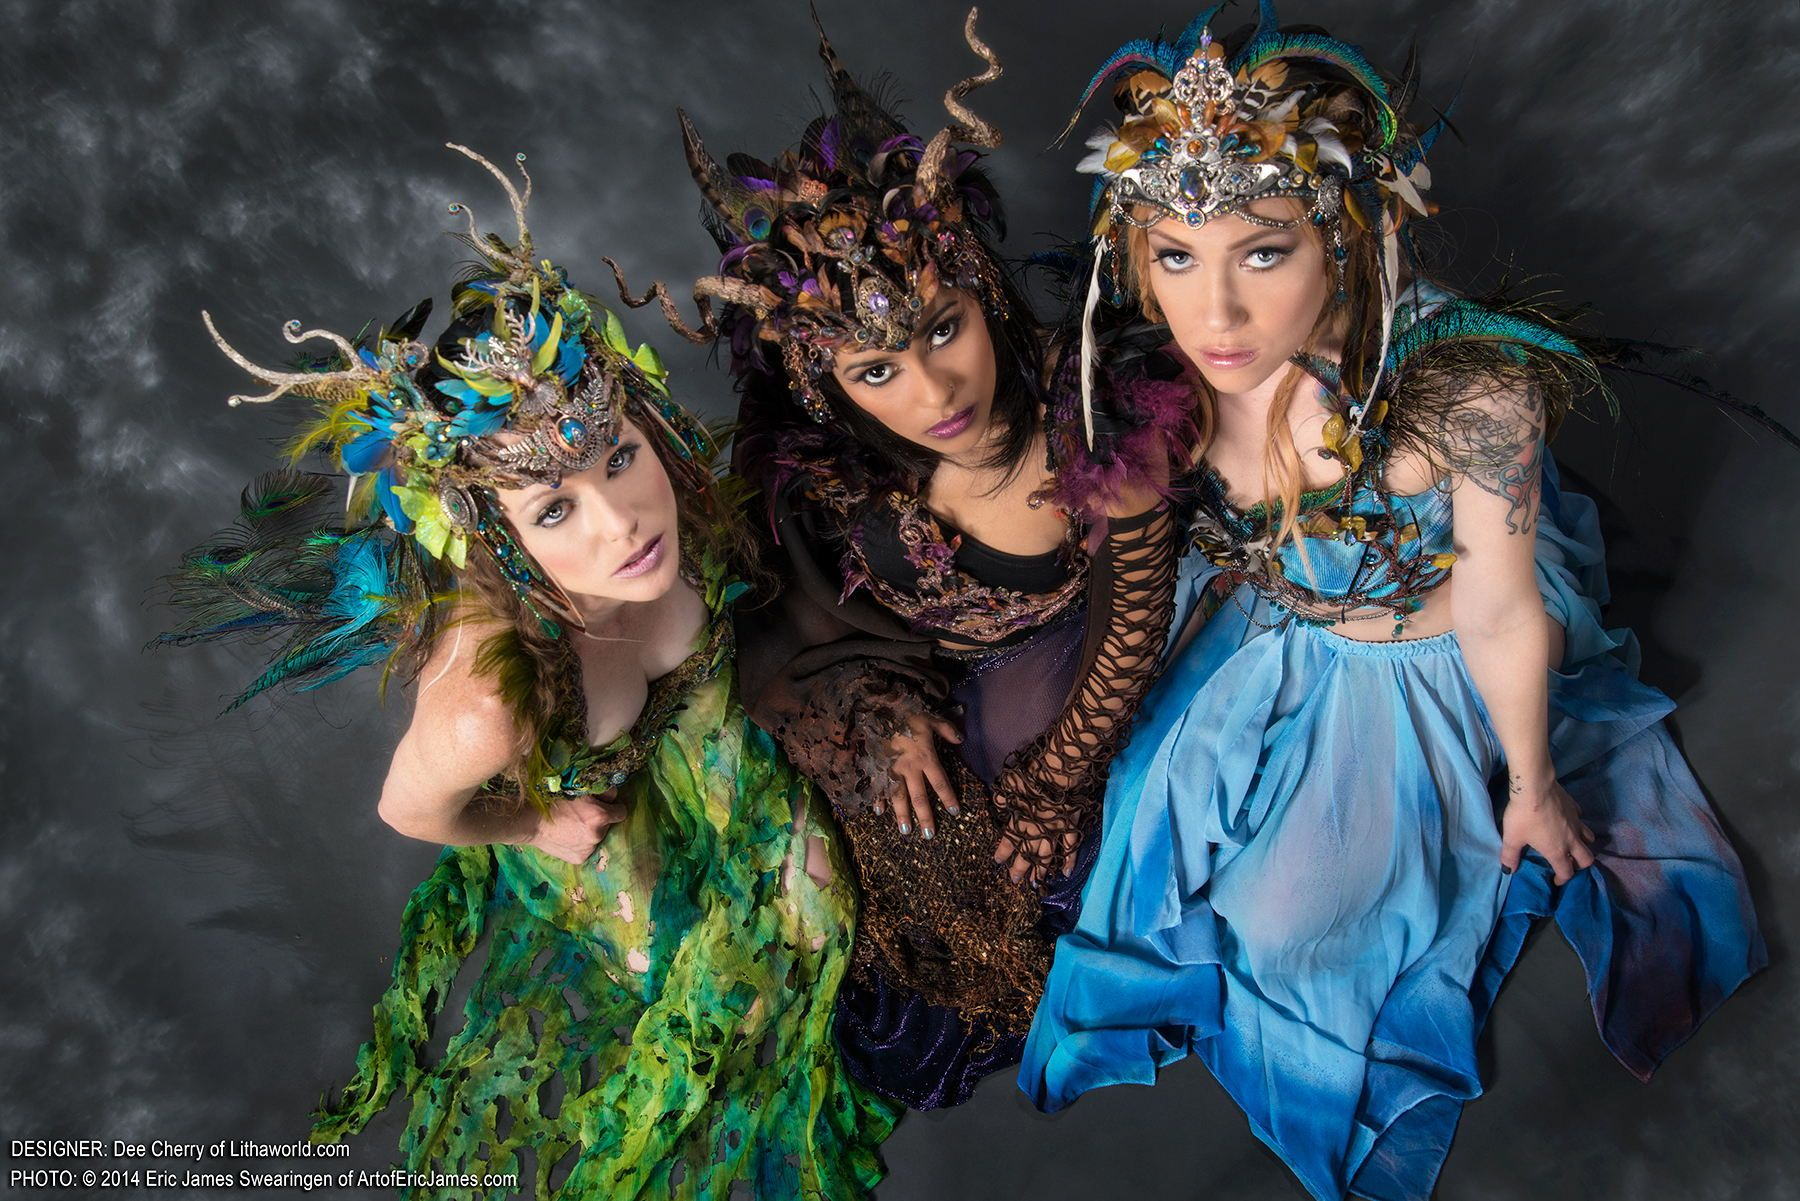 fantasy costume collection from designer dee cherry by eric